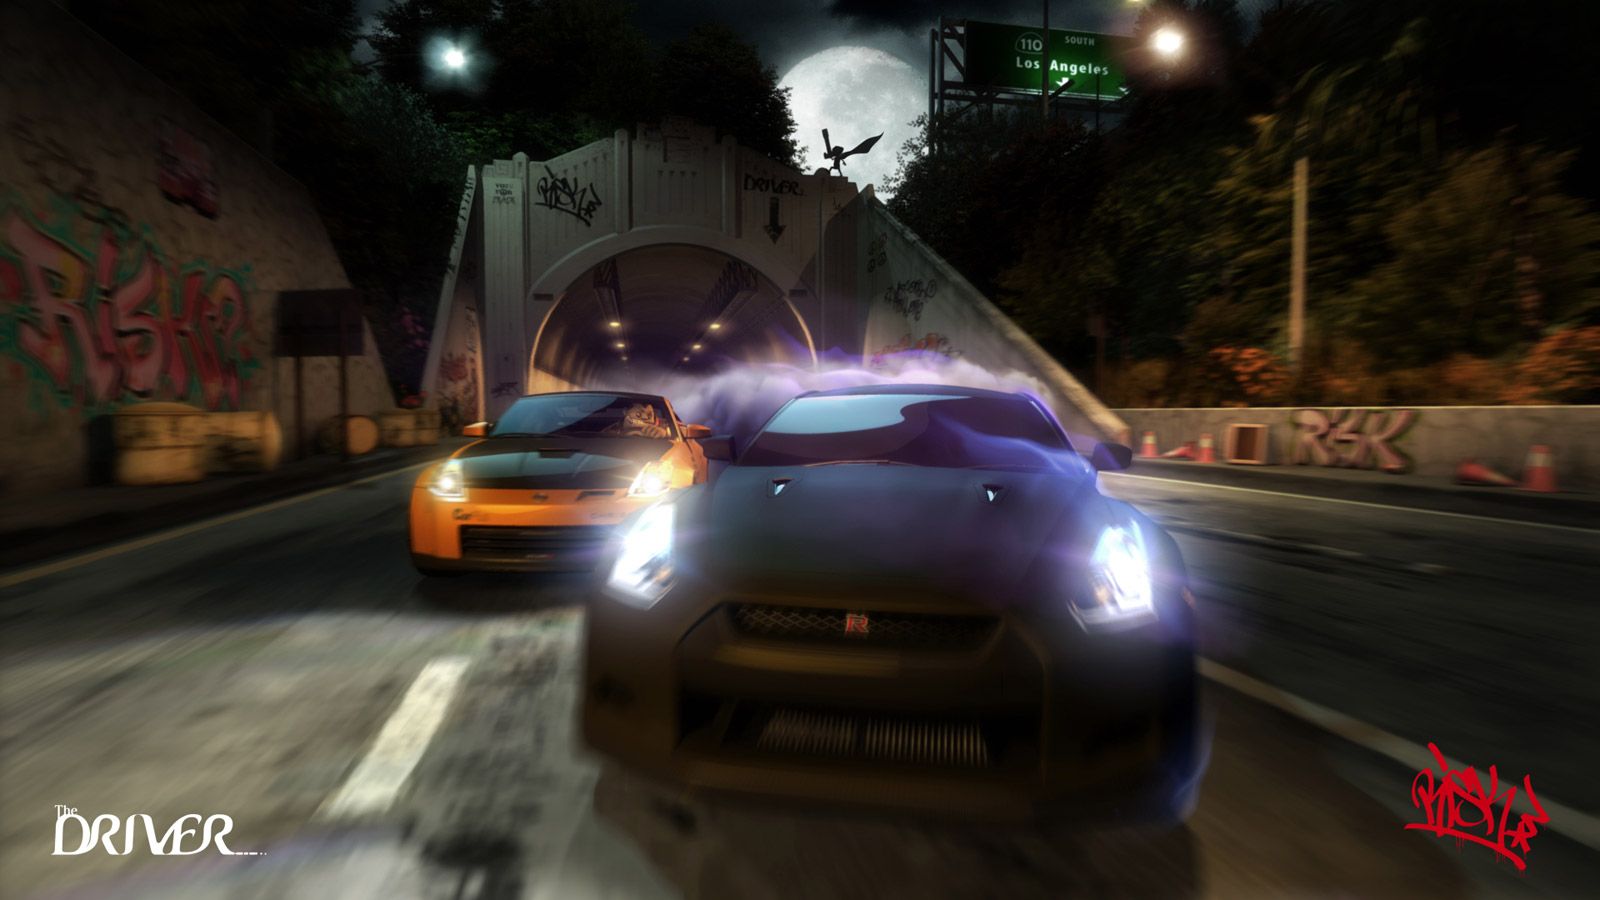 Nissan Los Angeles >> The Driver Animated Series Is Like Disney Pixar Cars For Adults: Video